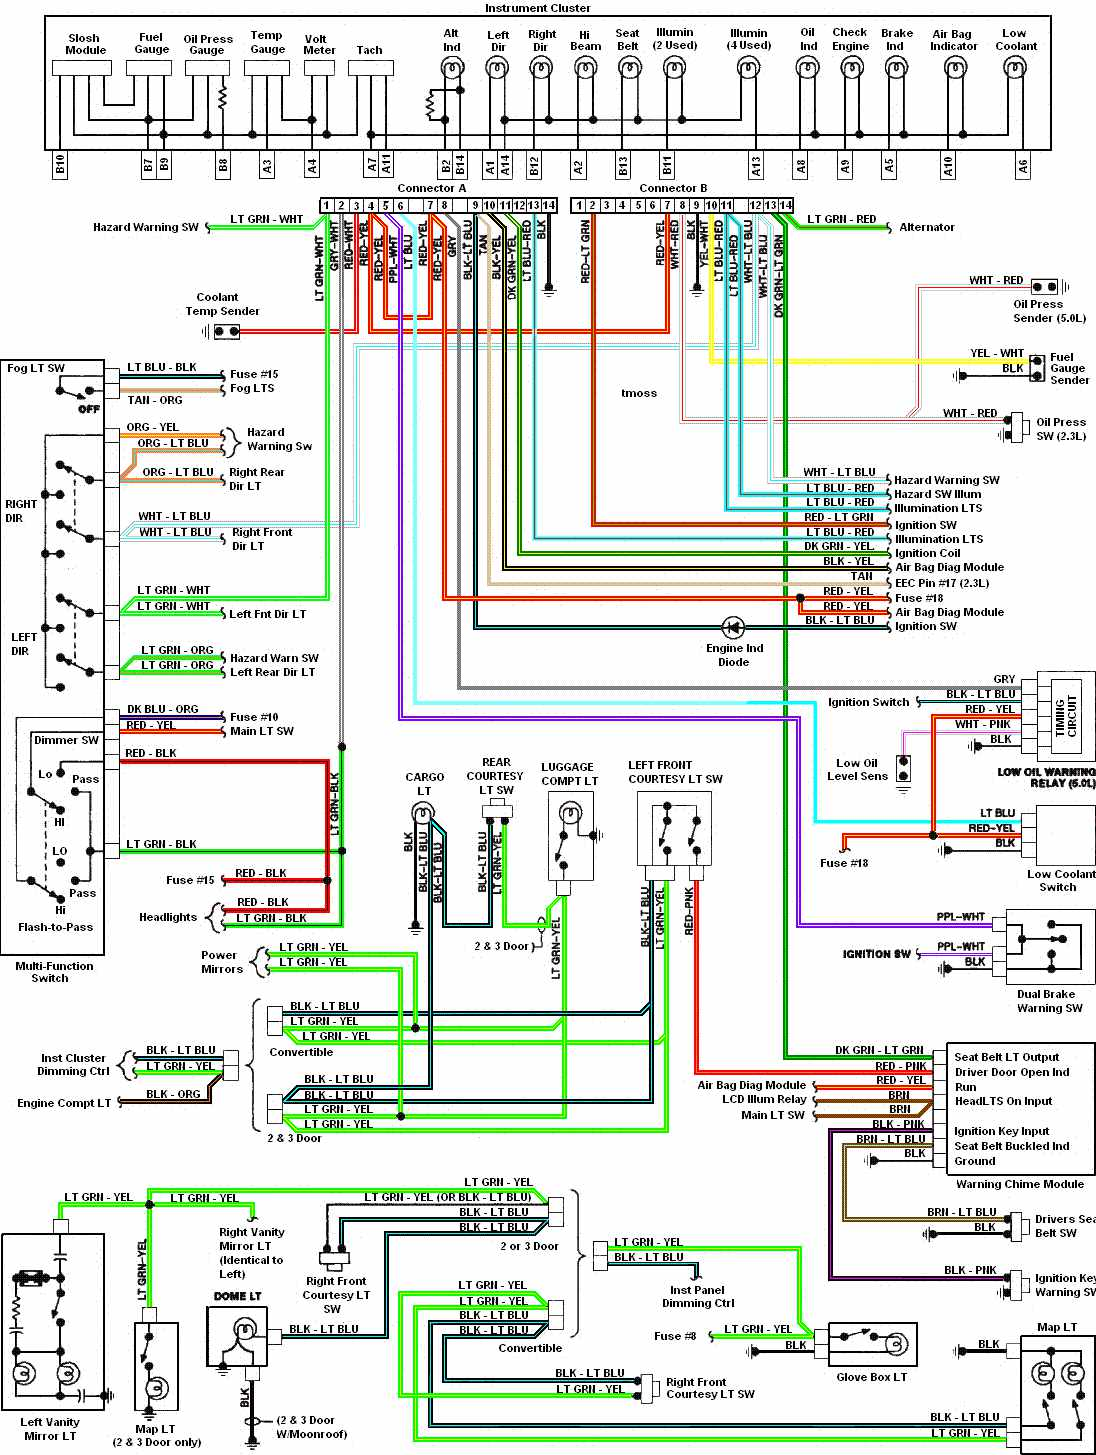 4 3 Mercruiser Wiring Diagram Color Code | Best Wiring Liry  Mercruiser Wiring Diagram on johnson wiring diagram, mako wiring diagram, chevrolet wiring diagram, omc wiring diagram, sears wiring diagram, clark wiring diagram, sea ray wiring diagram, marine power wiring diagram, lowe wiring diagram, viking wiring diagram, seaswirl wiring diagram, trojan wiring diagram, nissan wiring diagram, polaris wiring diagram, evinrude etec wiring diagram, elan wiring diagram, vip wiring diagram, smoker craft wiring diagram, marine engine wiring diagram, chris craft wiring diagram,